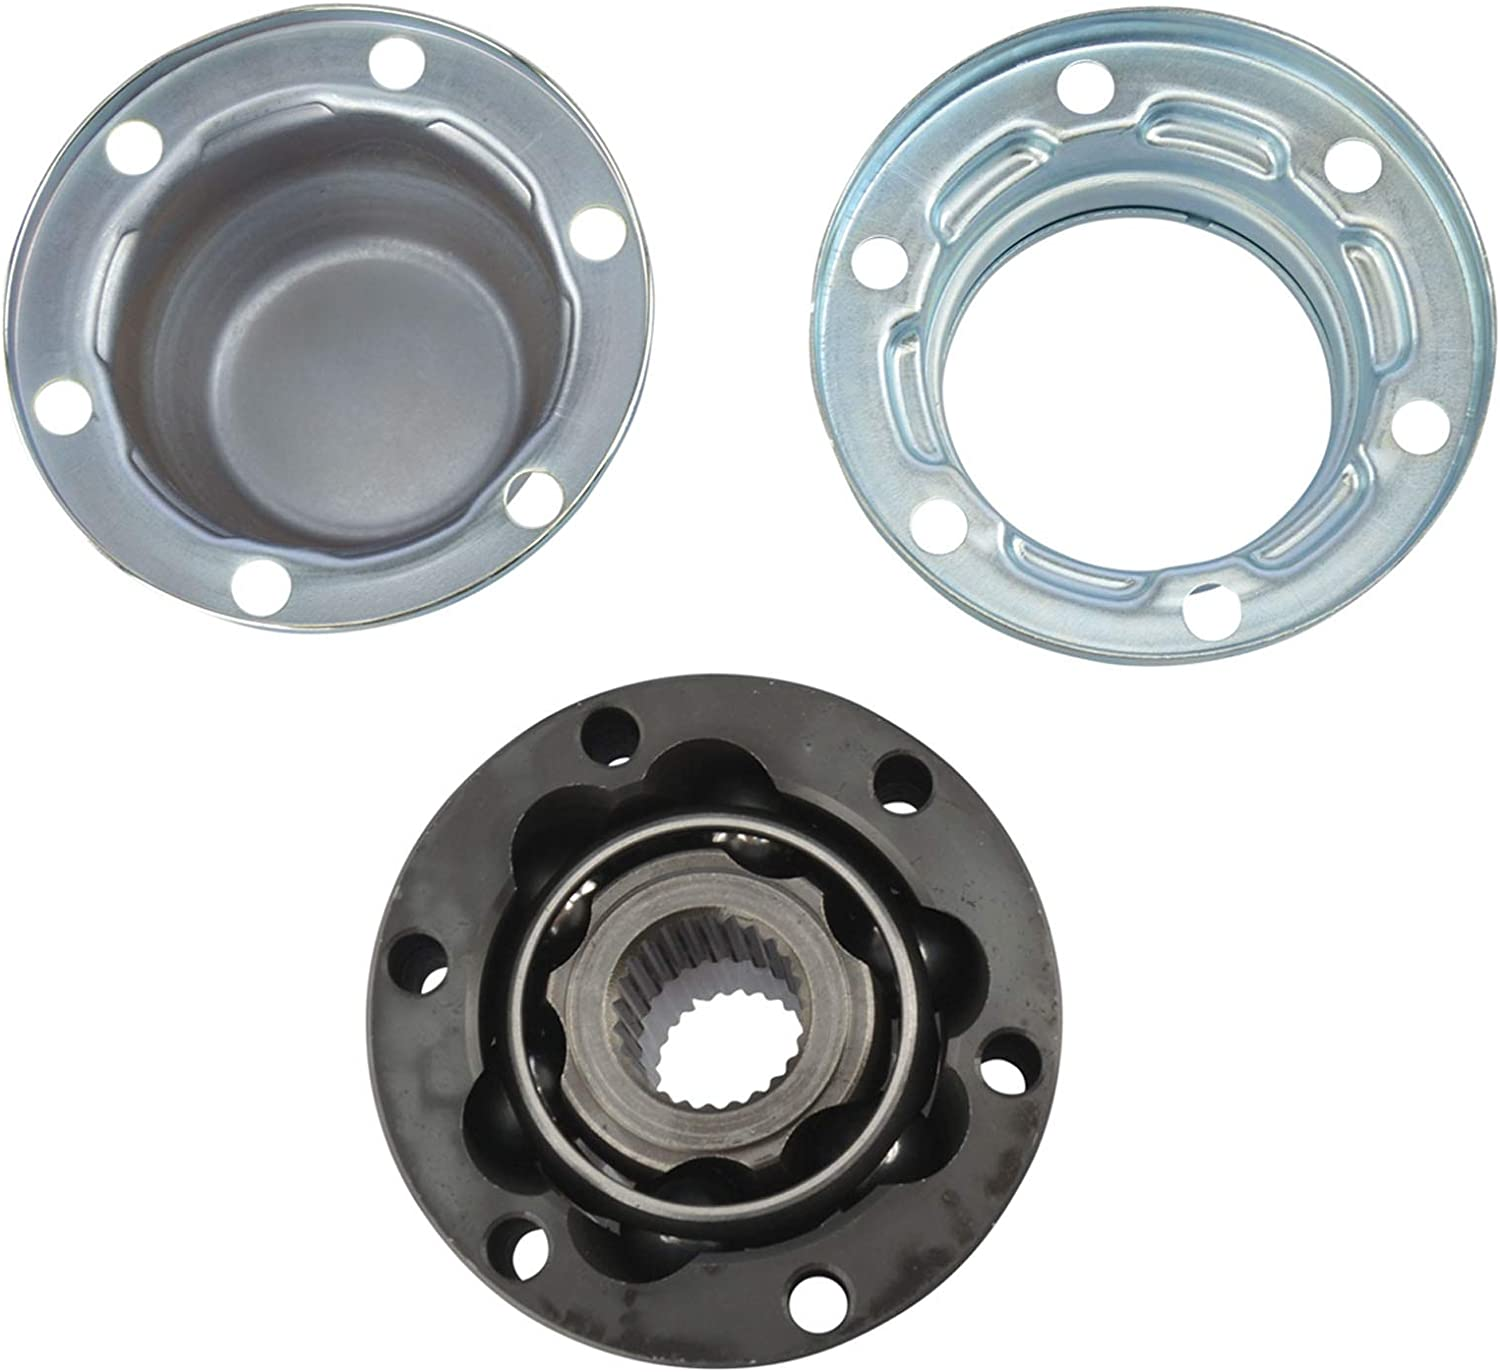 2002-2007 Jeep Liberty TRQ Front Drive Shaft Front CV Joint Rebuild Kit for 1999-2004 Jeep Grand Cherokee with QUADRA-DRIVE 4WD System